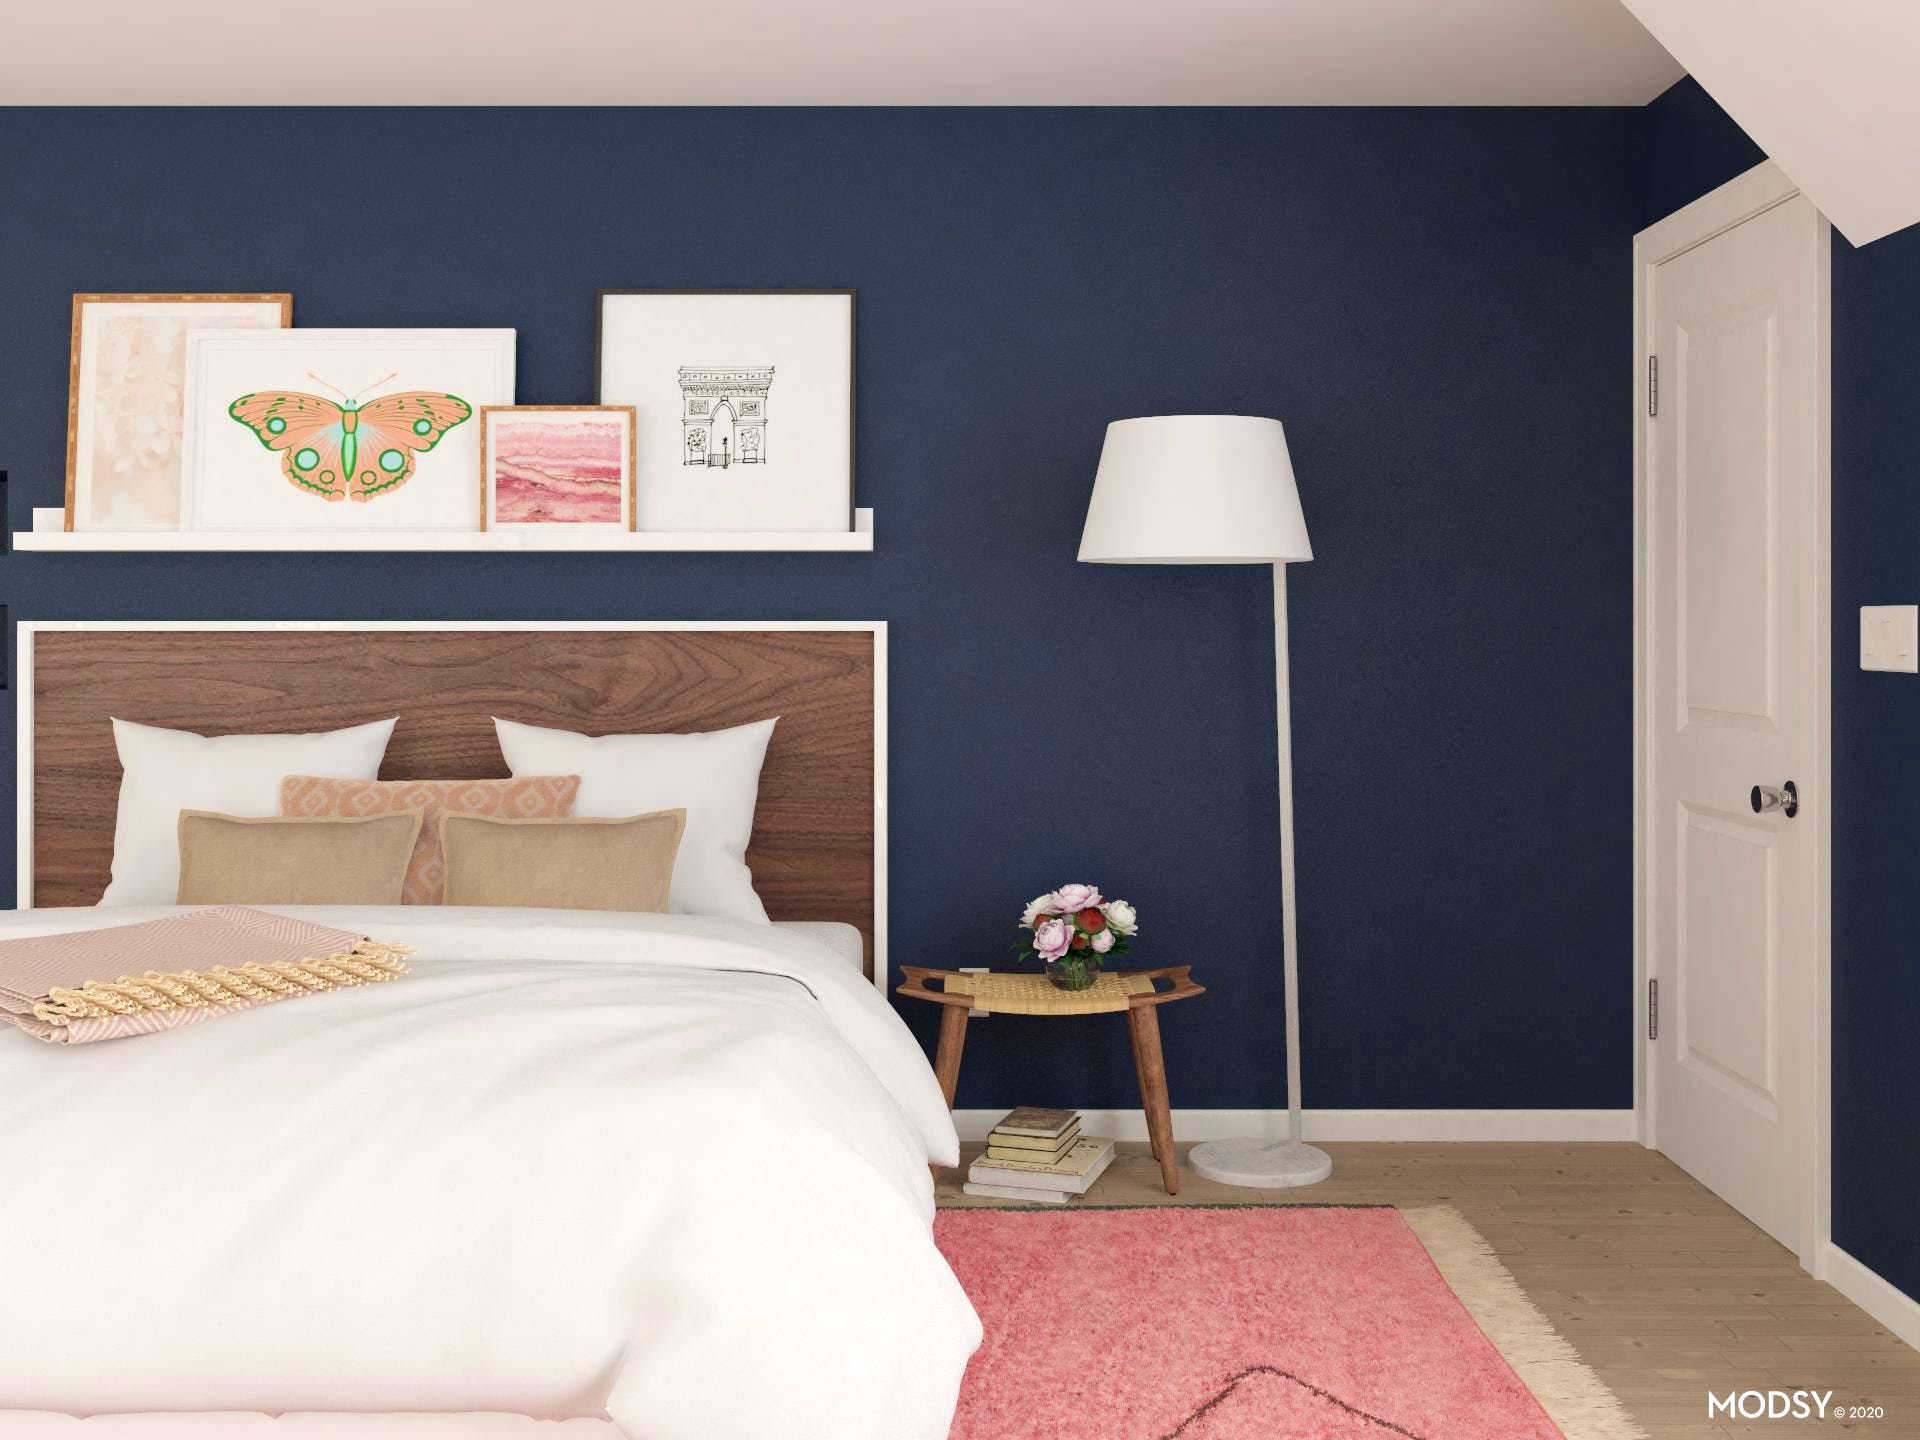 Moody Blue and Pink Bedroom in Transitional Style